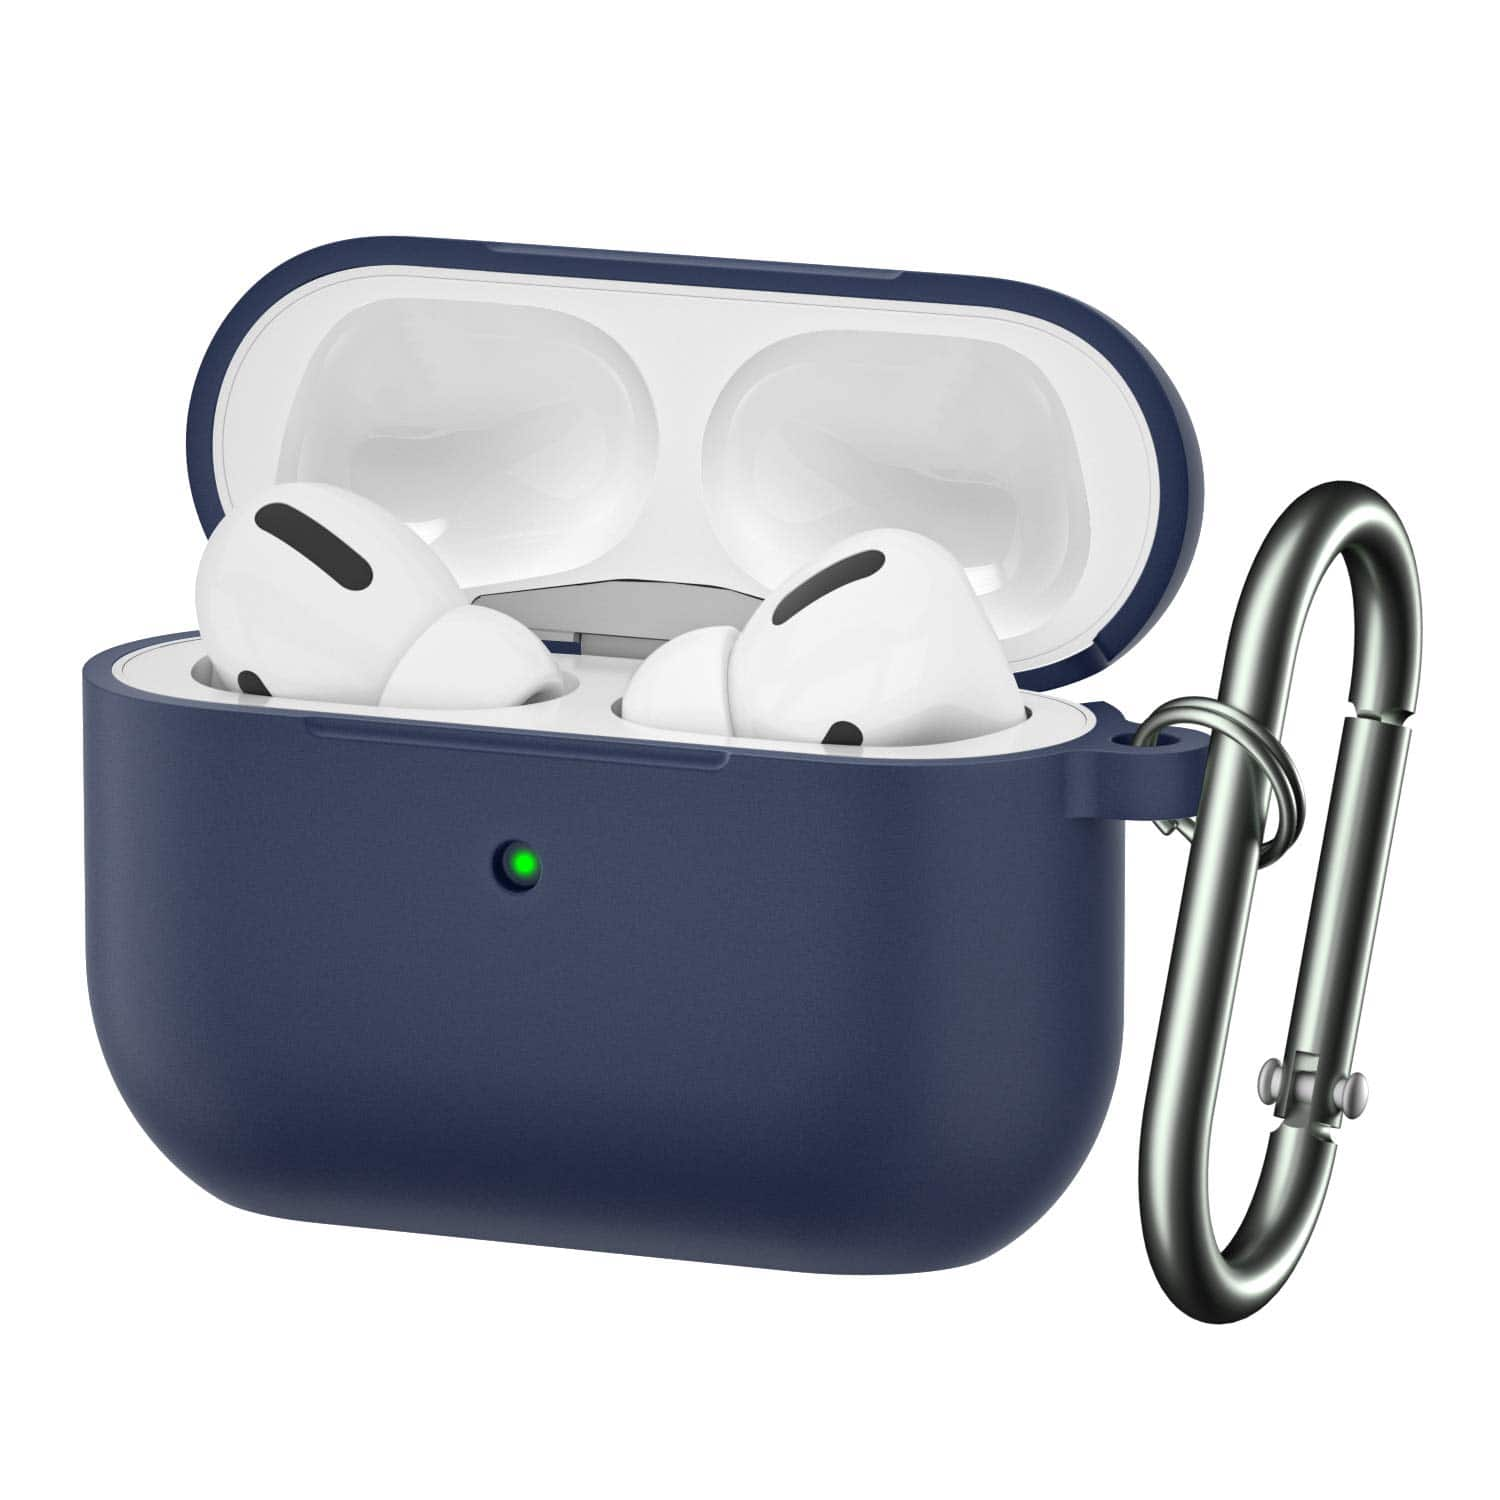 BRG for Airpods Pro Case, Soft Silicone Skin Cover Shock-Absorbing Protective Case $2.99